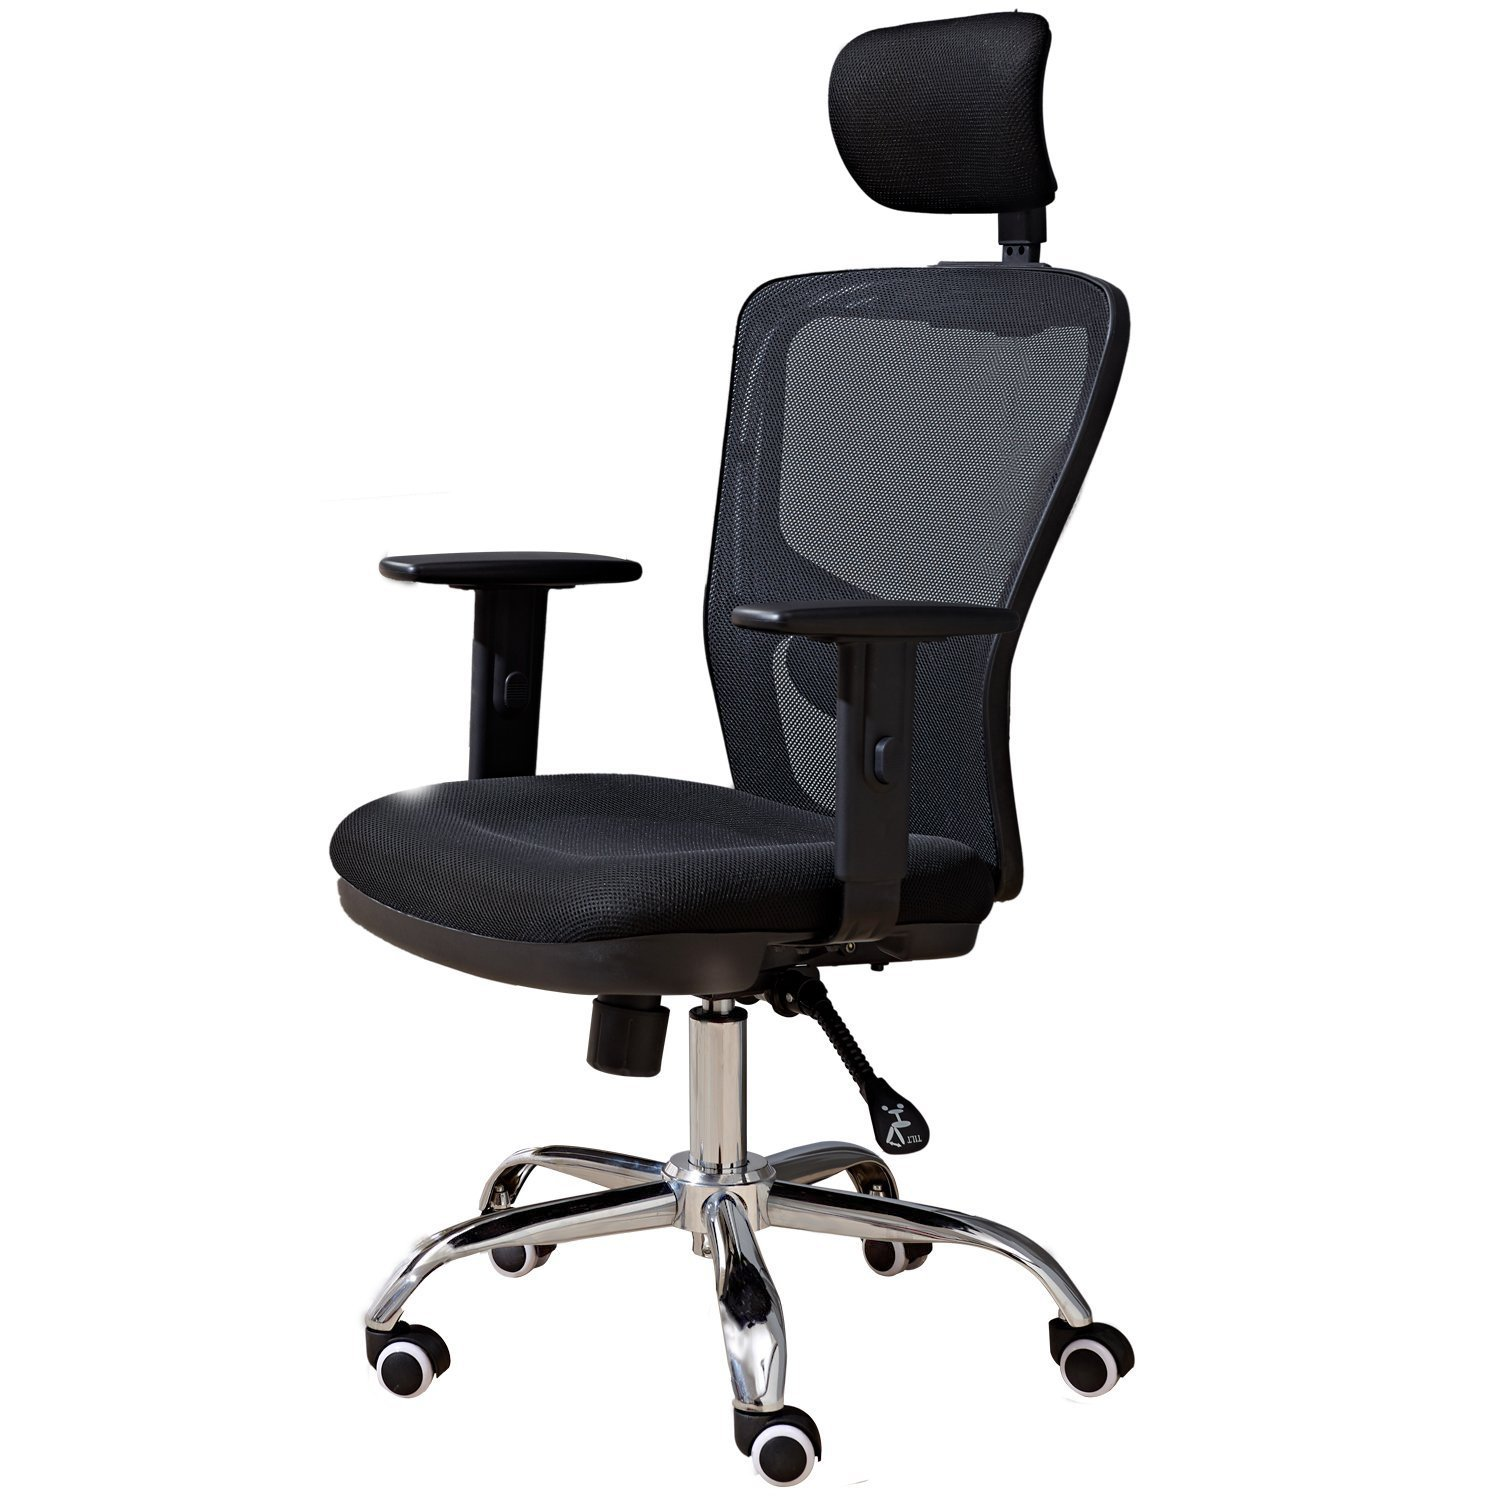 High Back Mesh Office Chair with Adjustable Headrest and Lumber Support (Black)